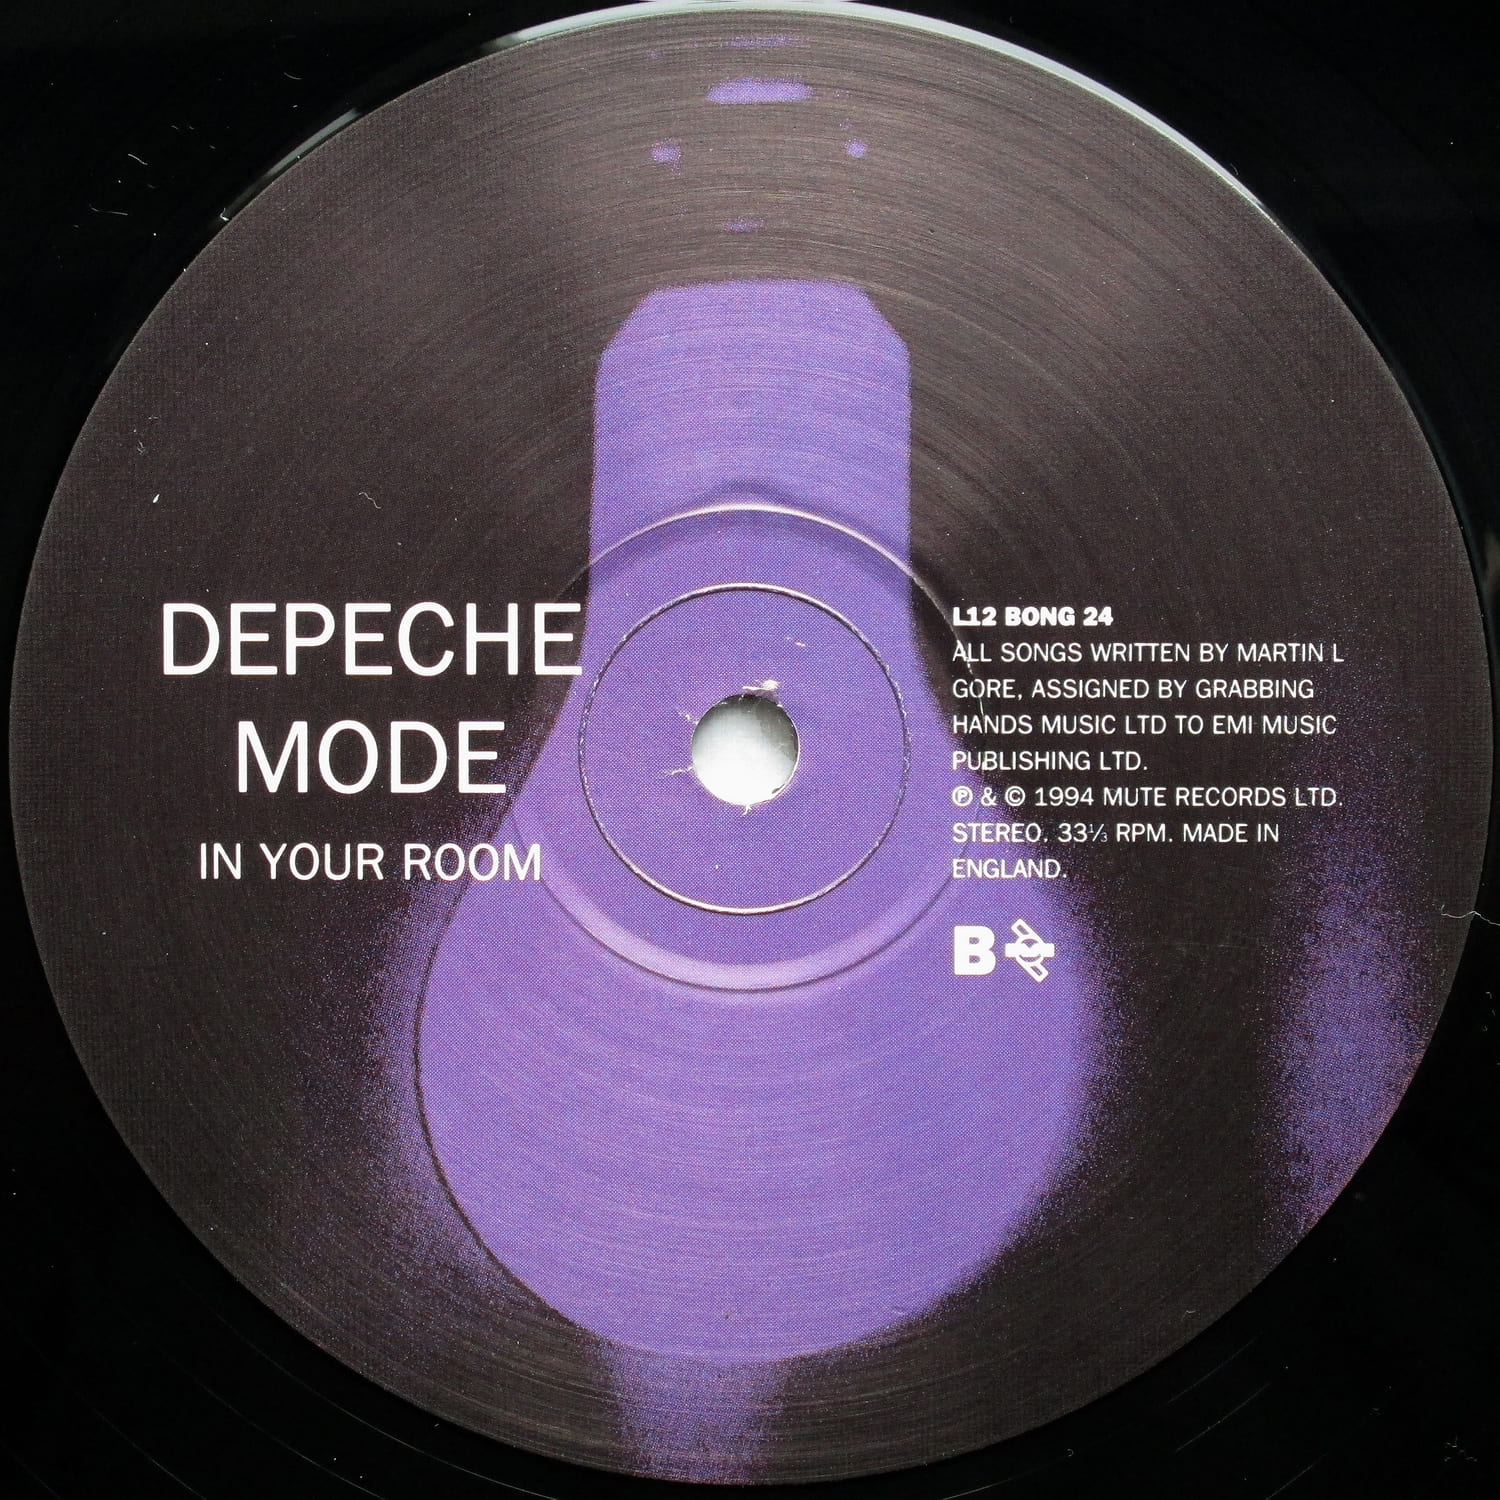 Depeche Mode Quot In Your Room Quot 1993